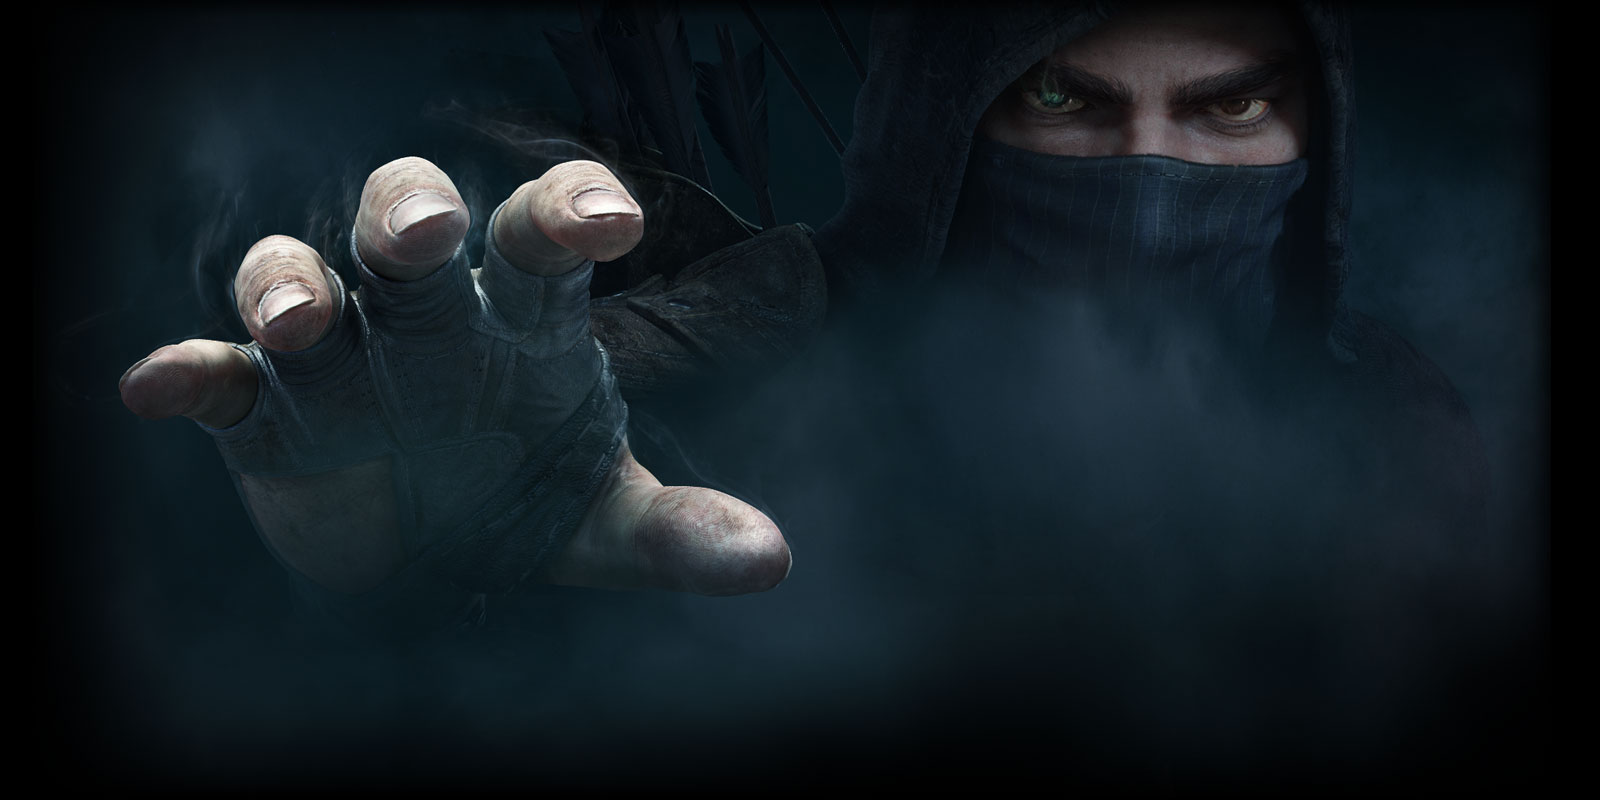 Thief Beginners Tips: How to Avoid Guards and Find More Loot